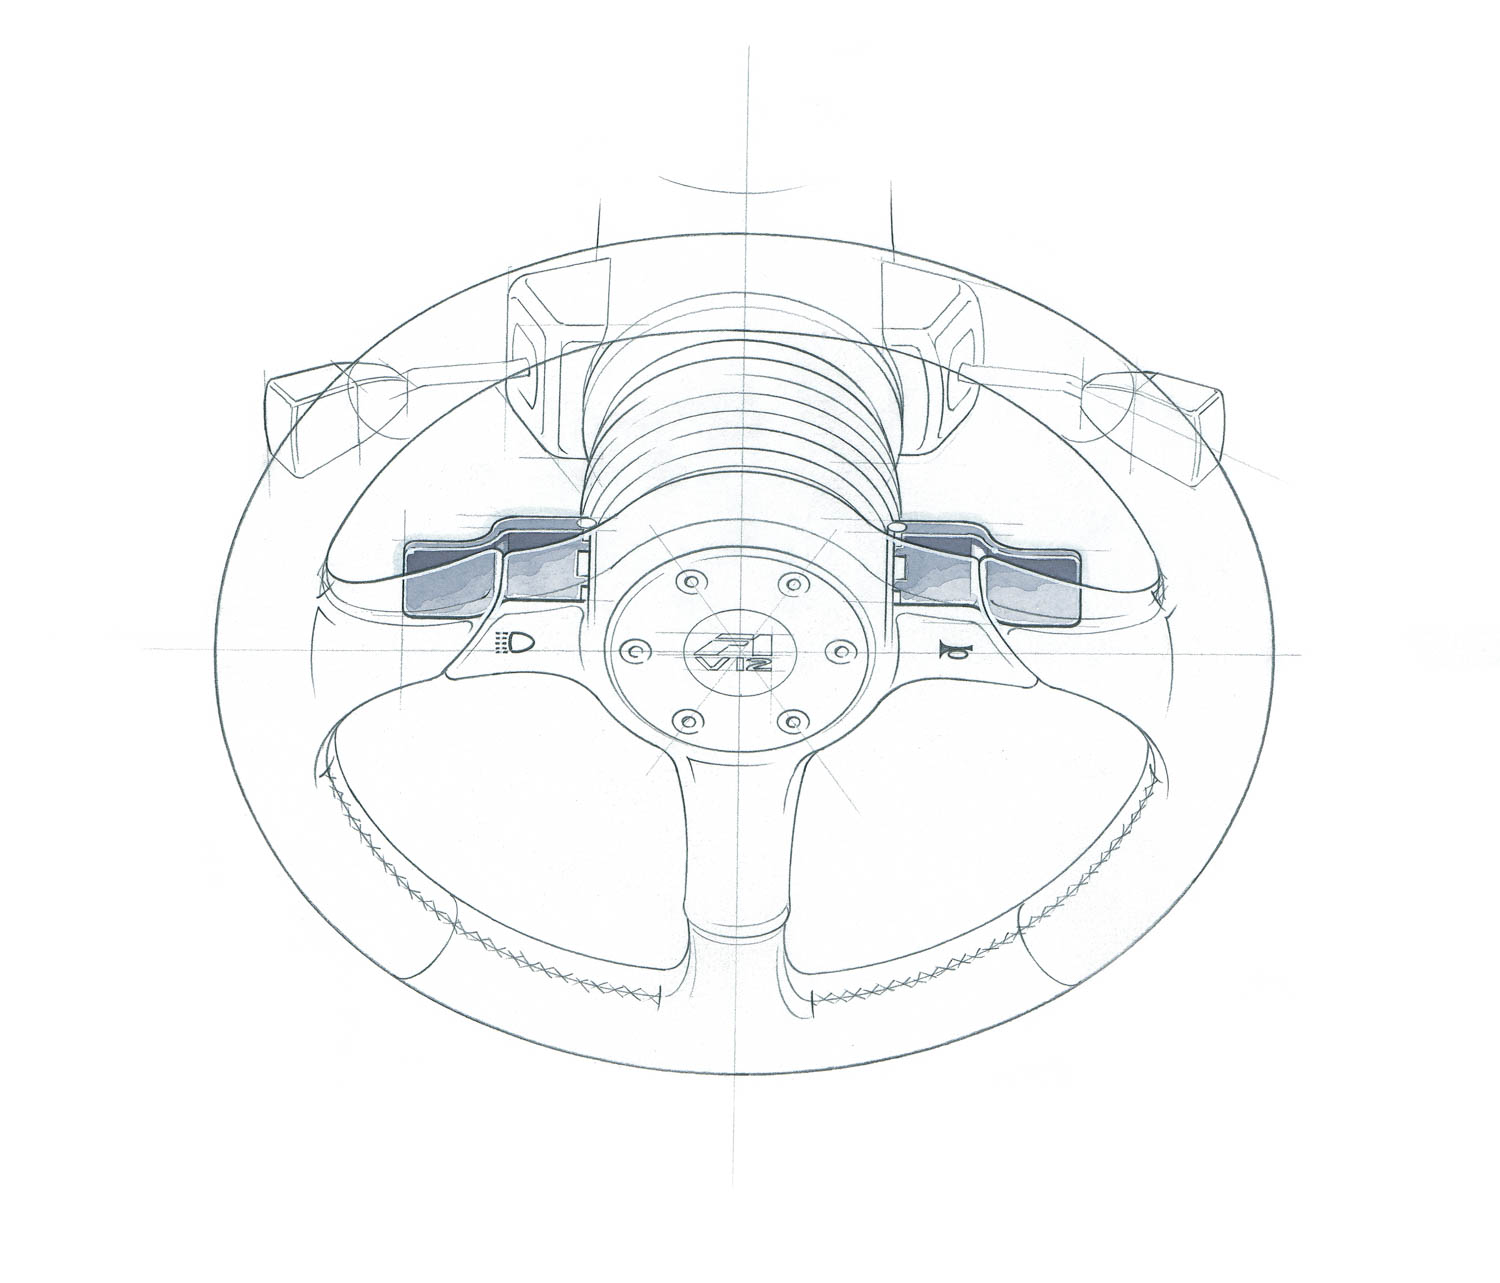 McLaren F1 steering wheel sketch